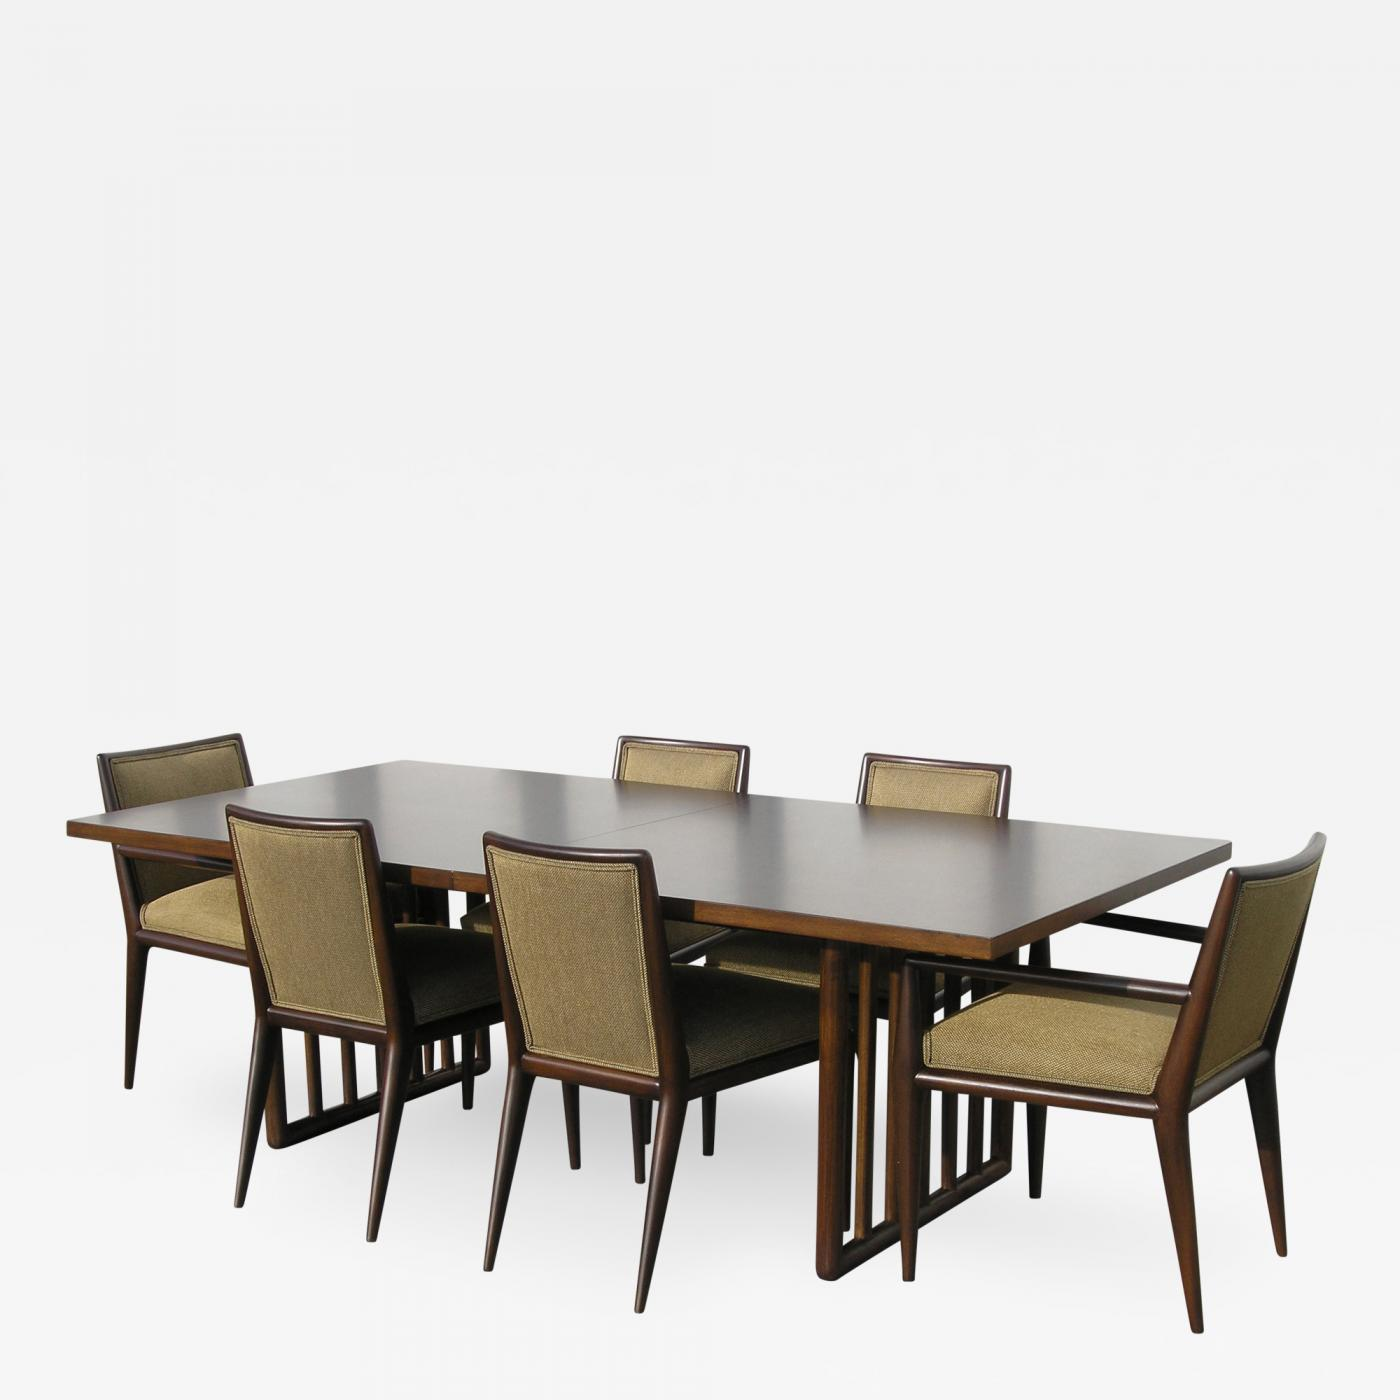 Dining Table With Six Chairs By T. H. Robsjohn Gibbings For Widdicomb